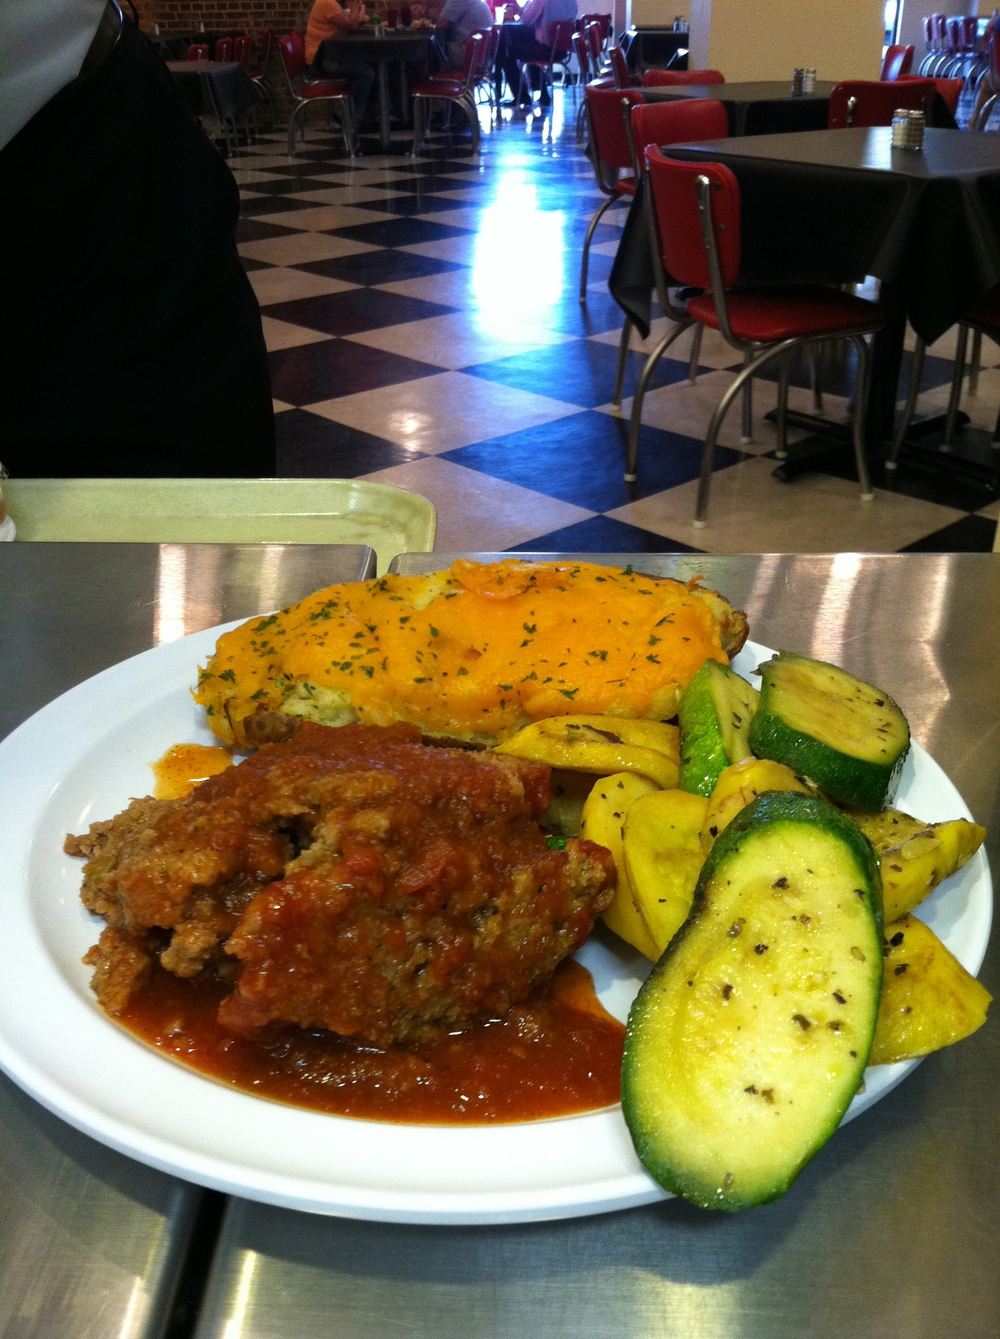 Meatloaf with creole sauce, squash and zucchini and a twice-baked potato